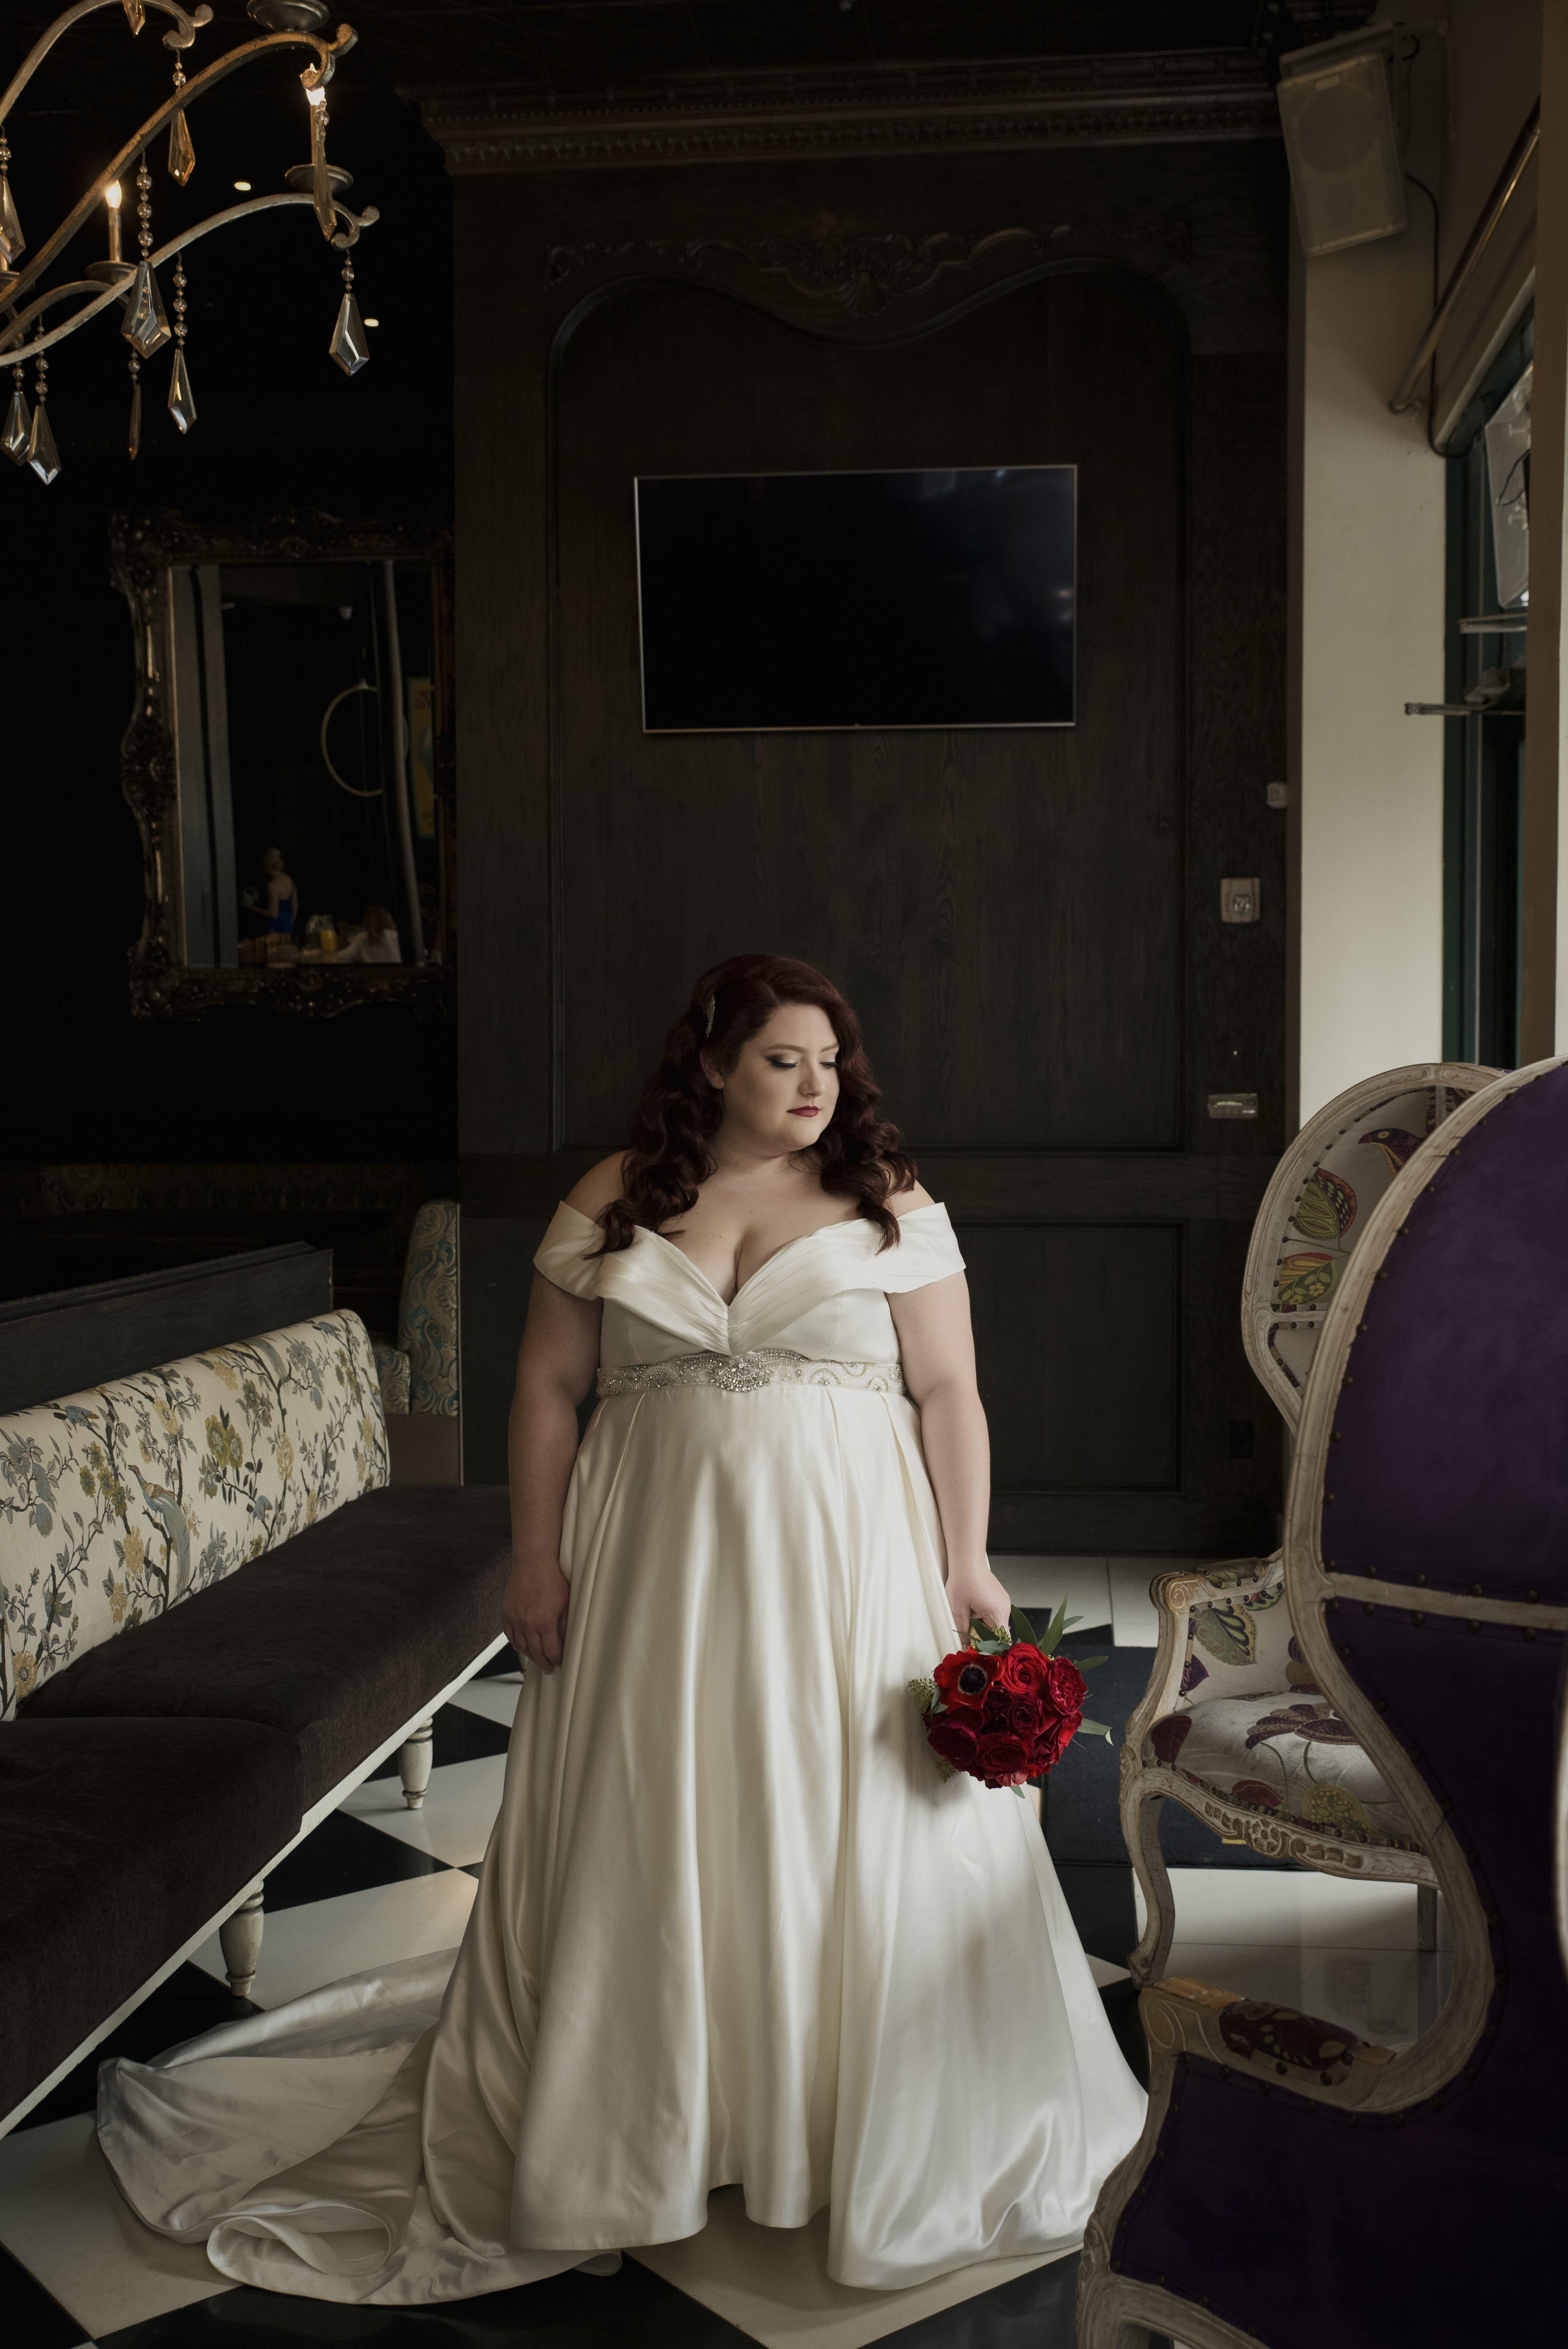 Anomalie specialized in making online wedding dresses for plus sized brides, including dresses with structured silhouette and off-the-shoulder sleeves.